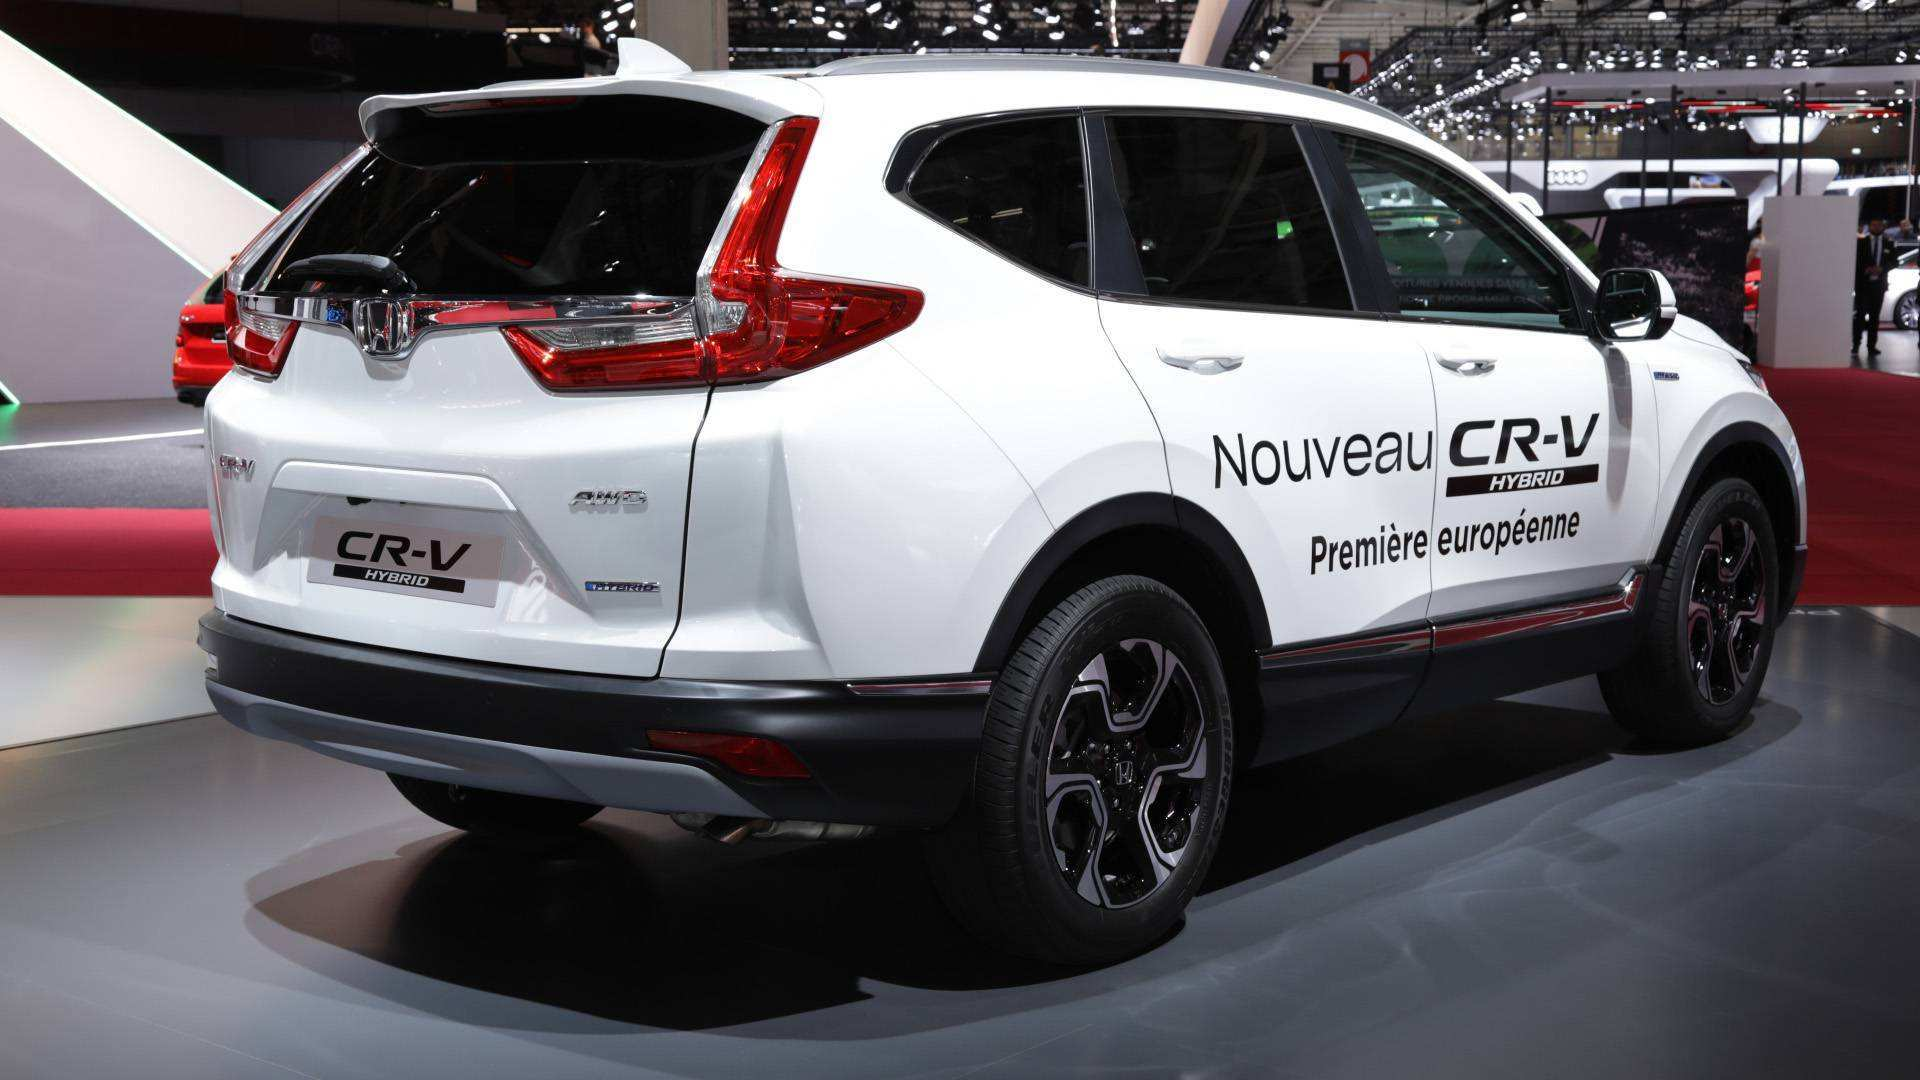 94 The Best Honda Crv 2020 History